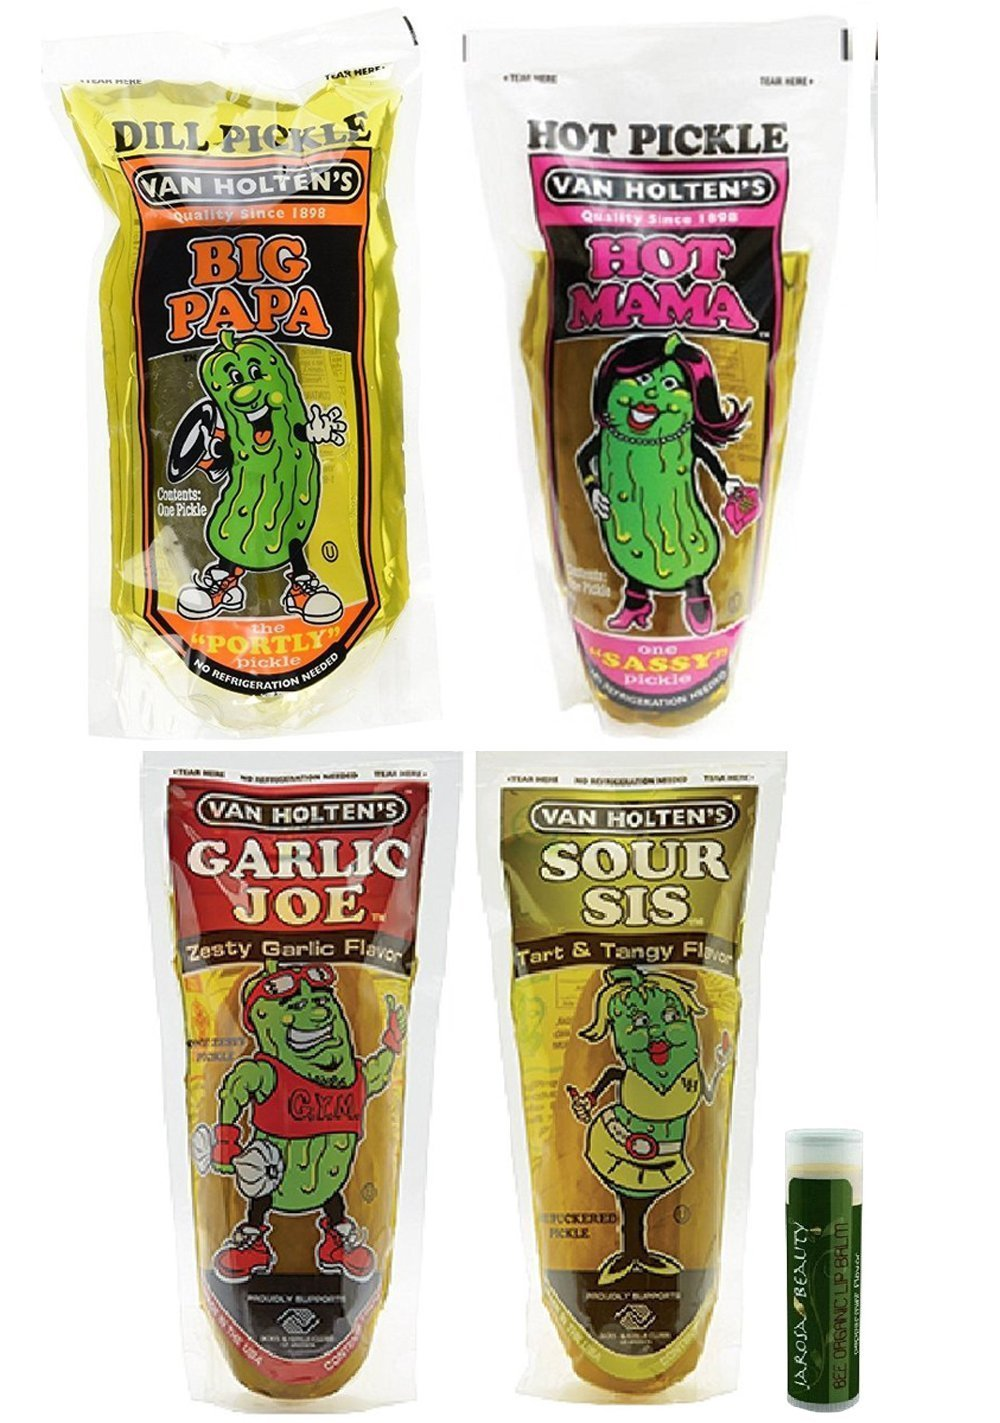 PICKLES 9 oz. Van Holtens' Meet the Family Variety Pack - Pack of 4 Includes Big Papa, Hot Mama, Garlic Joe & Sour Sis with a Jarosa Bee Organic Peppermint Lip Balm by Jarosa Gifts